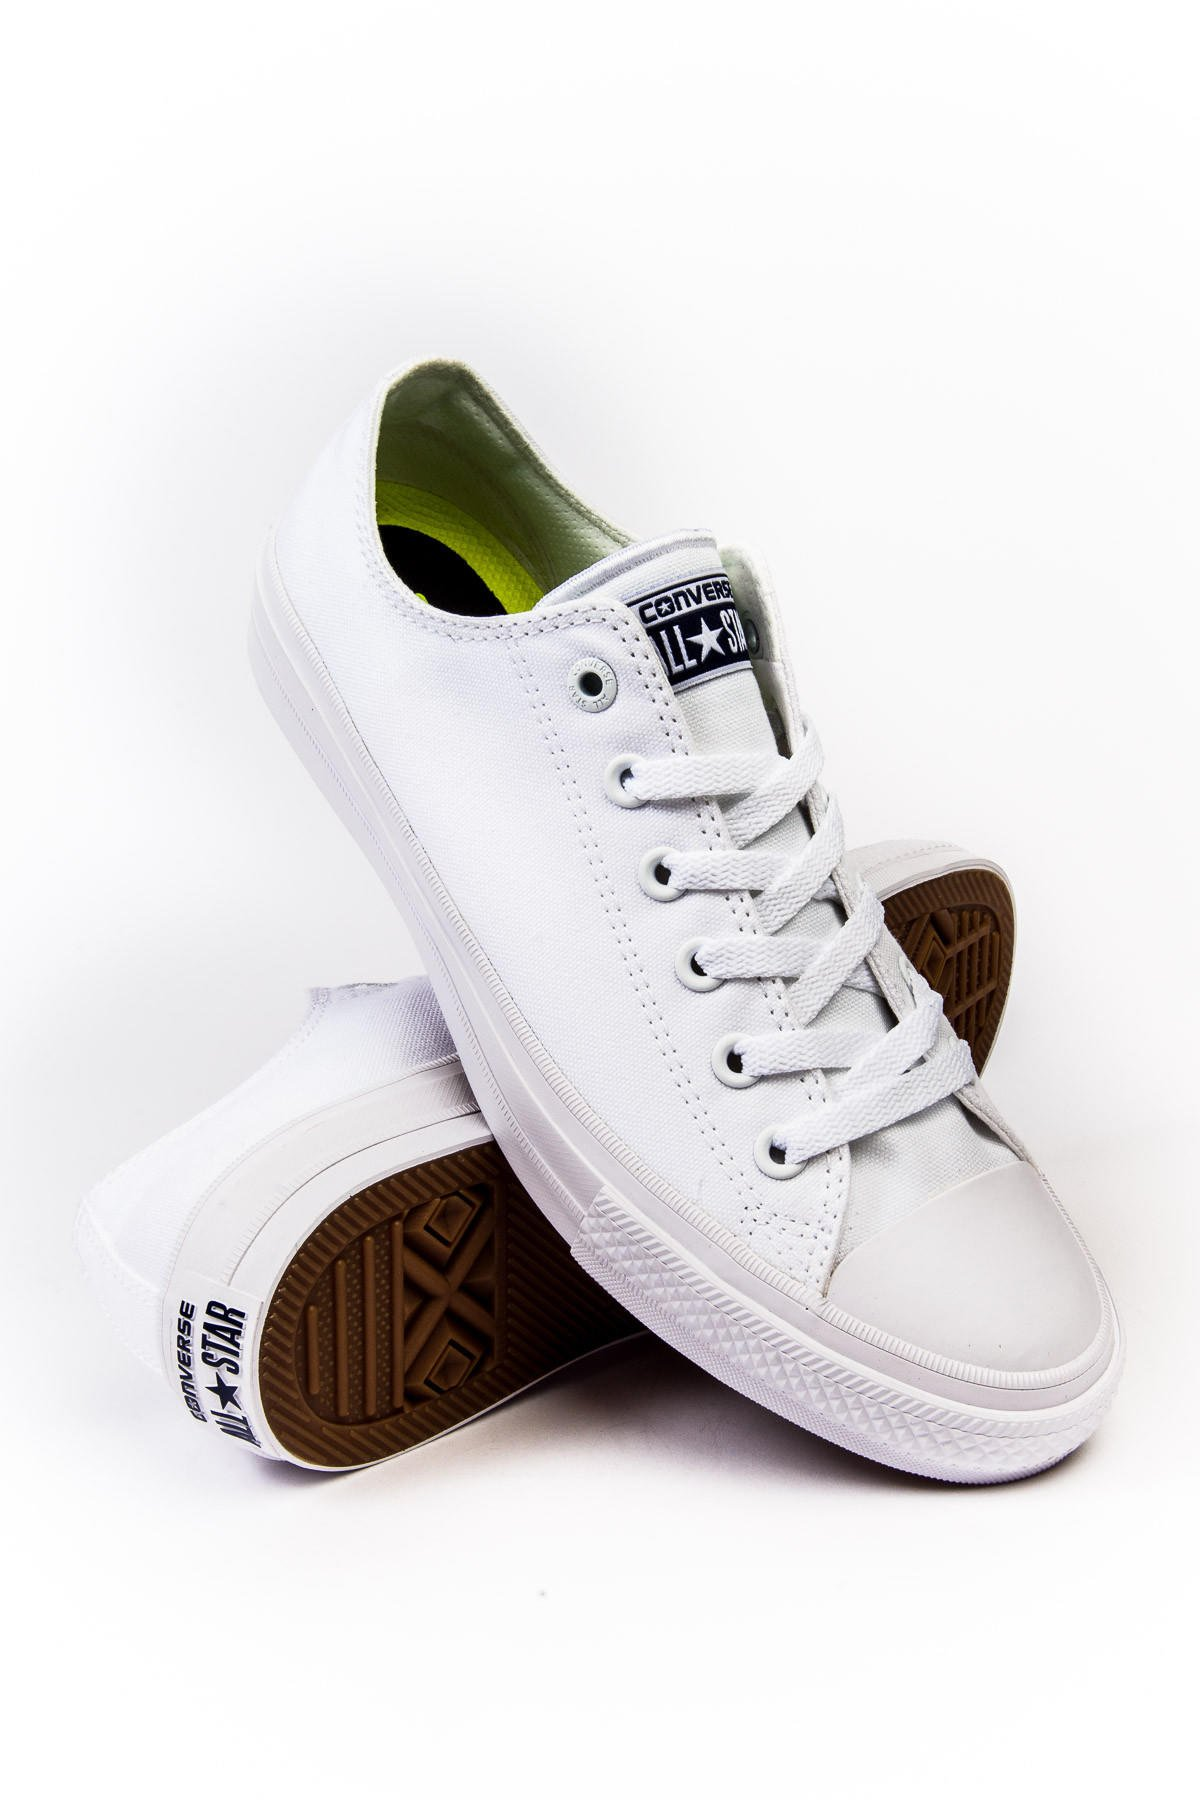 Converse Chuck Taylor All Star II White from Probus  02d7c939dac1